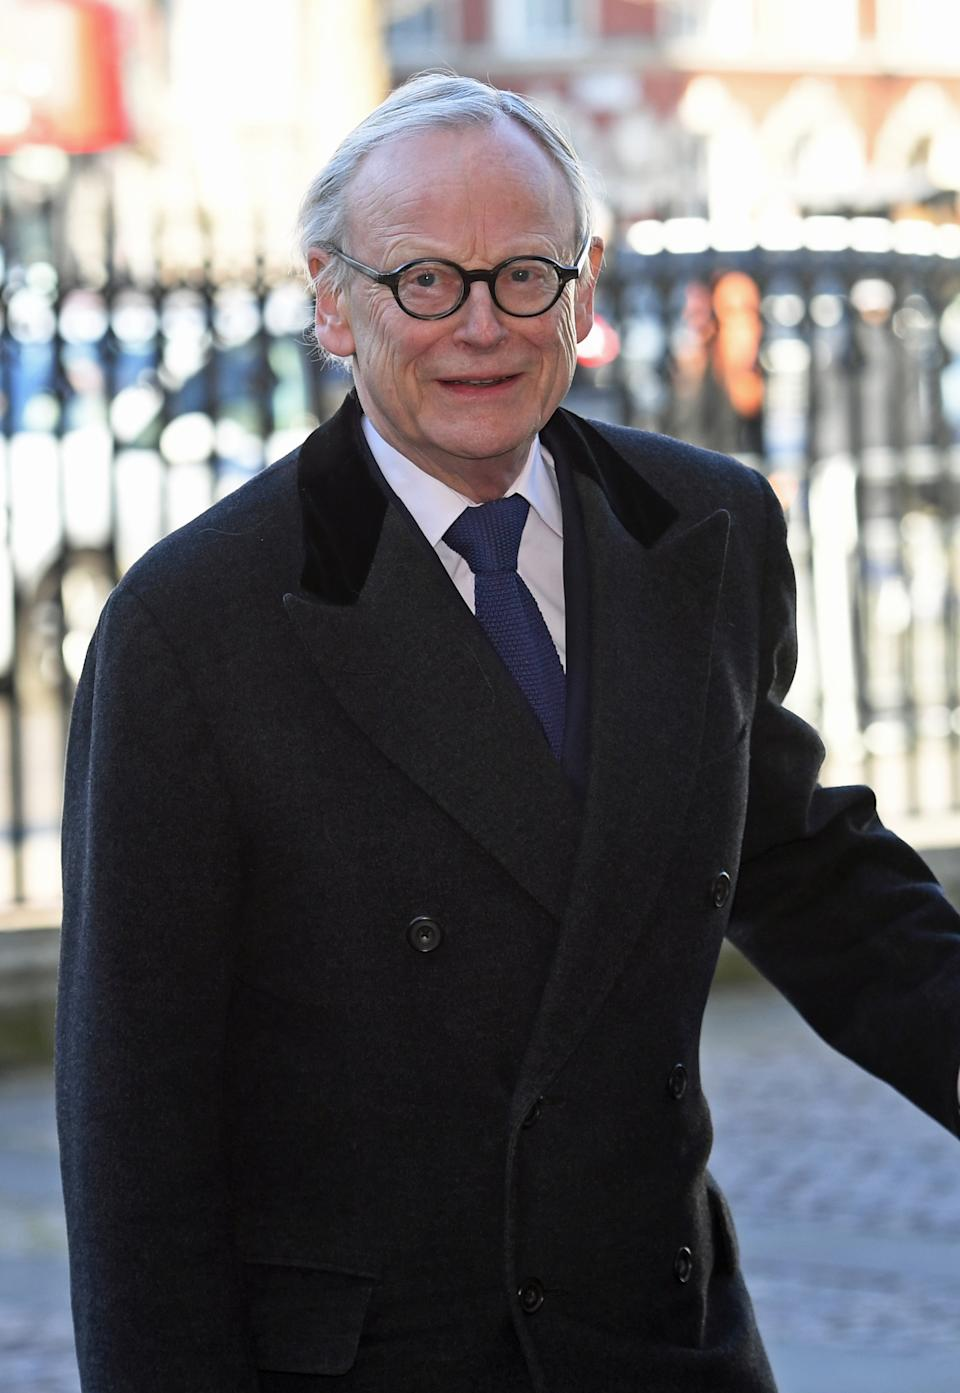 John Selwyn Gummer, Baron Deben at a service of thanksgiving for the life and work of former foreign secretary Lord Carrington at Westminster Abbey in London. (Photo by Stefan Rousseau/PA Images via Getty Images)